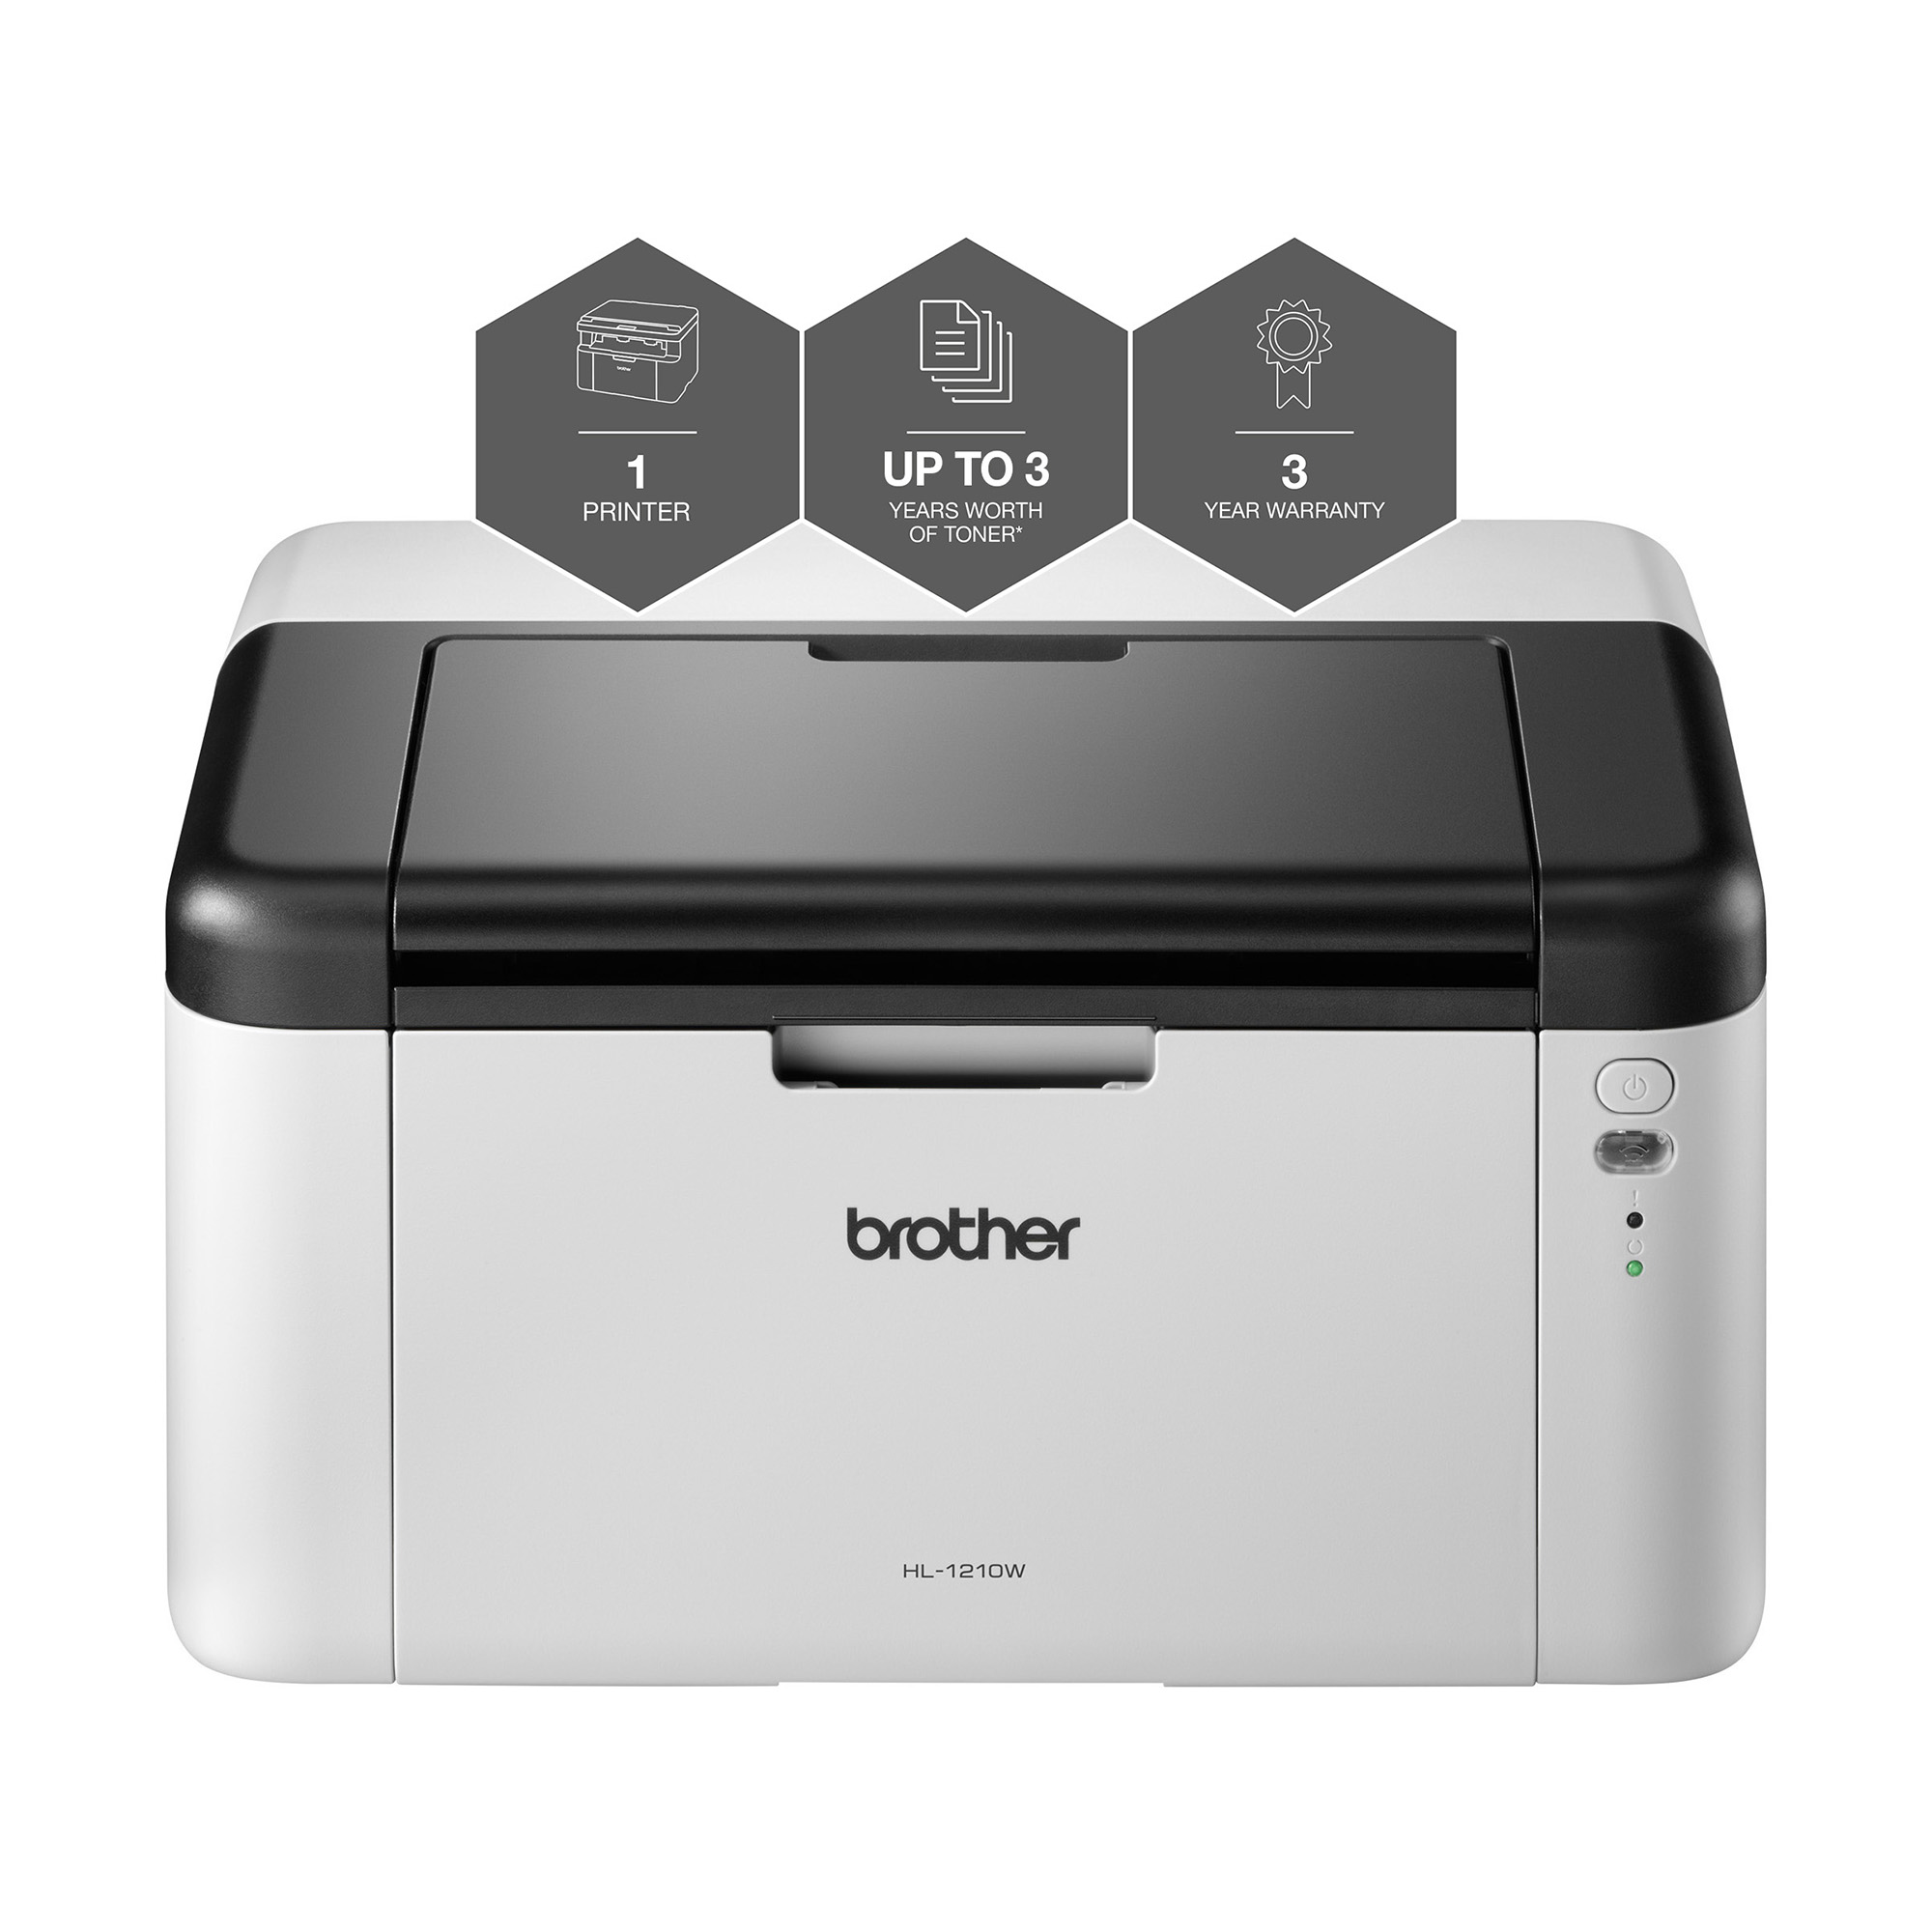 Laser printers Brother HL1210W All-in-Box Laser Printer Ref HL1210WVBZU1